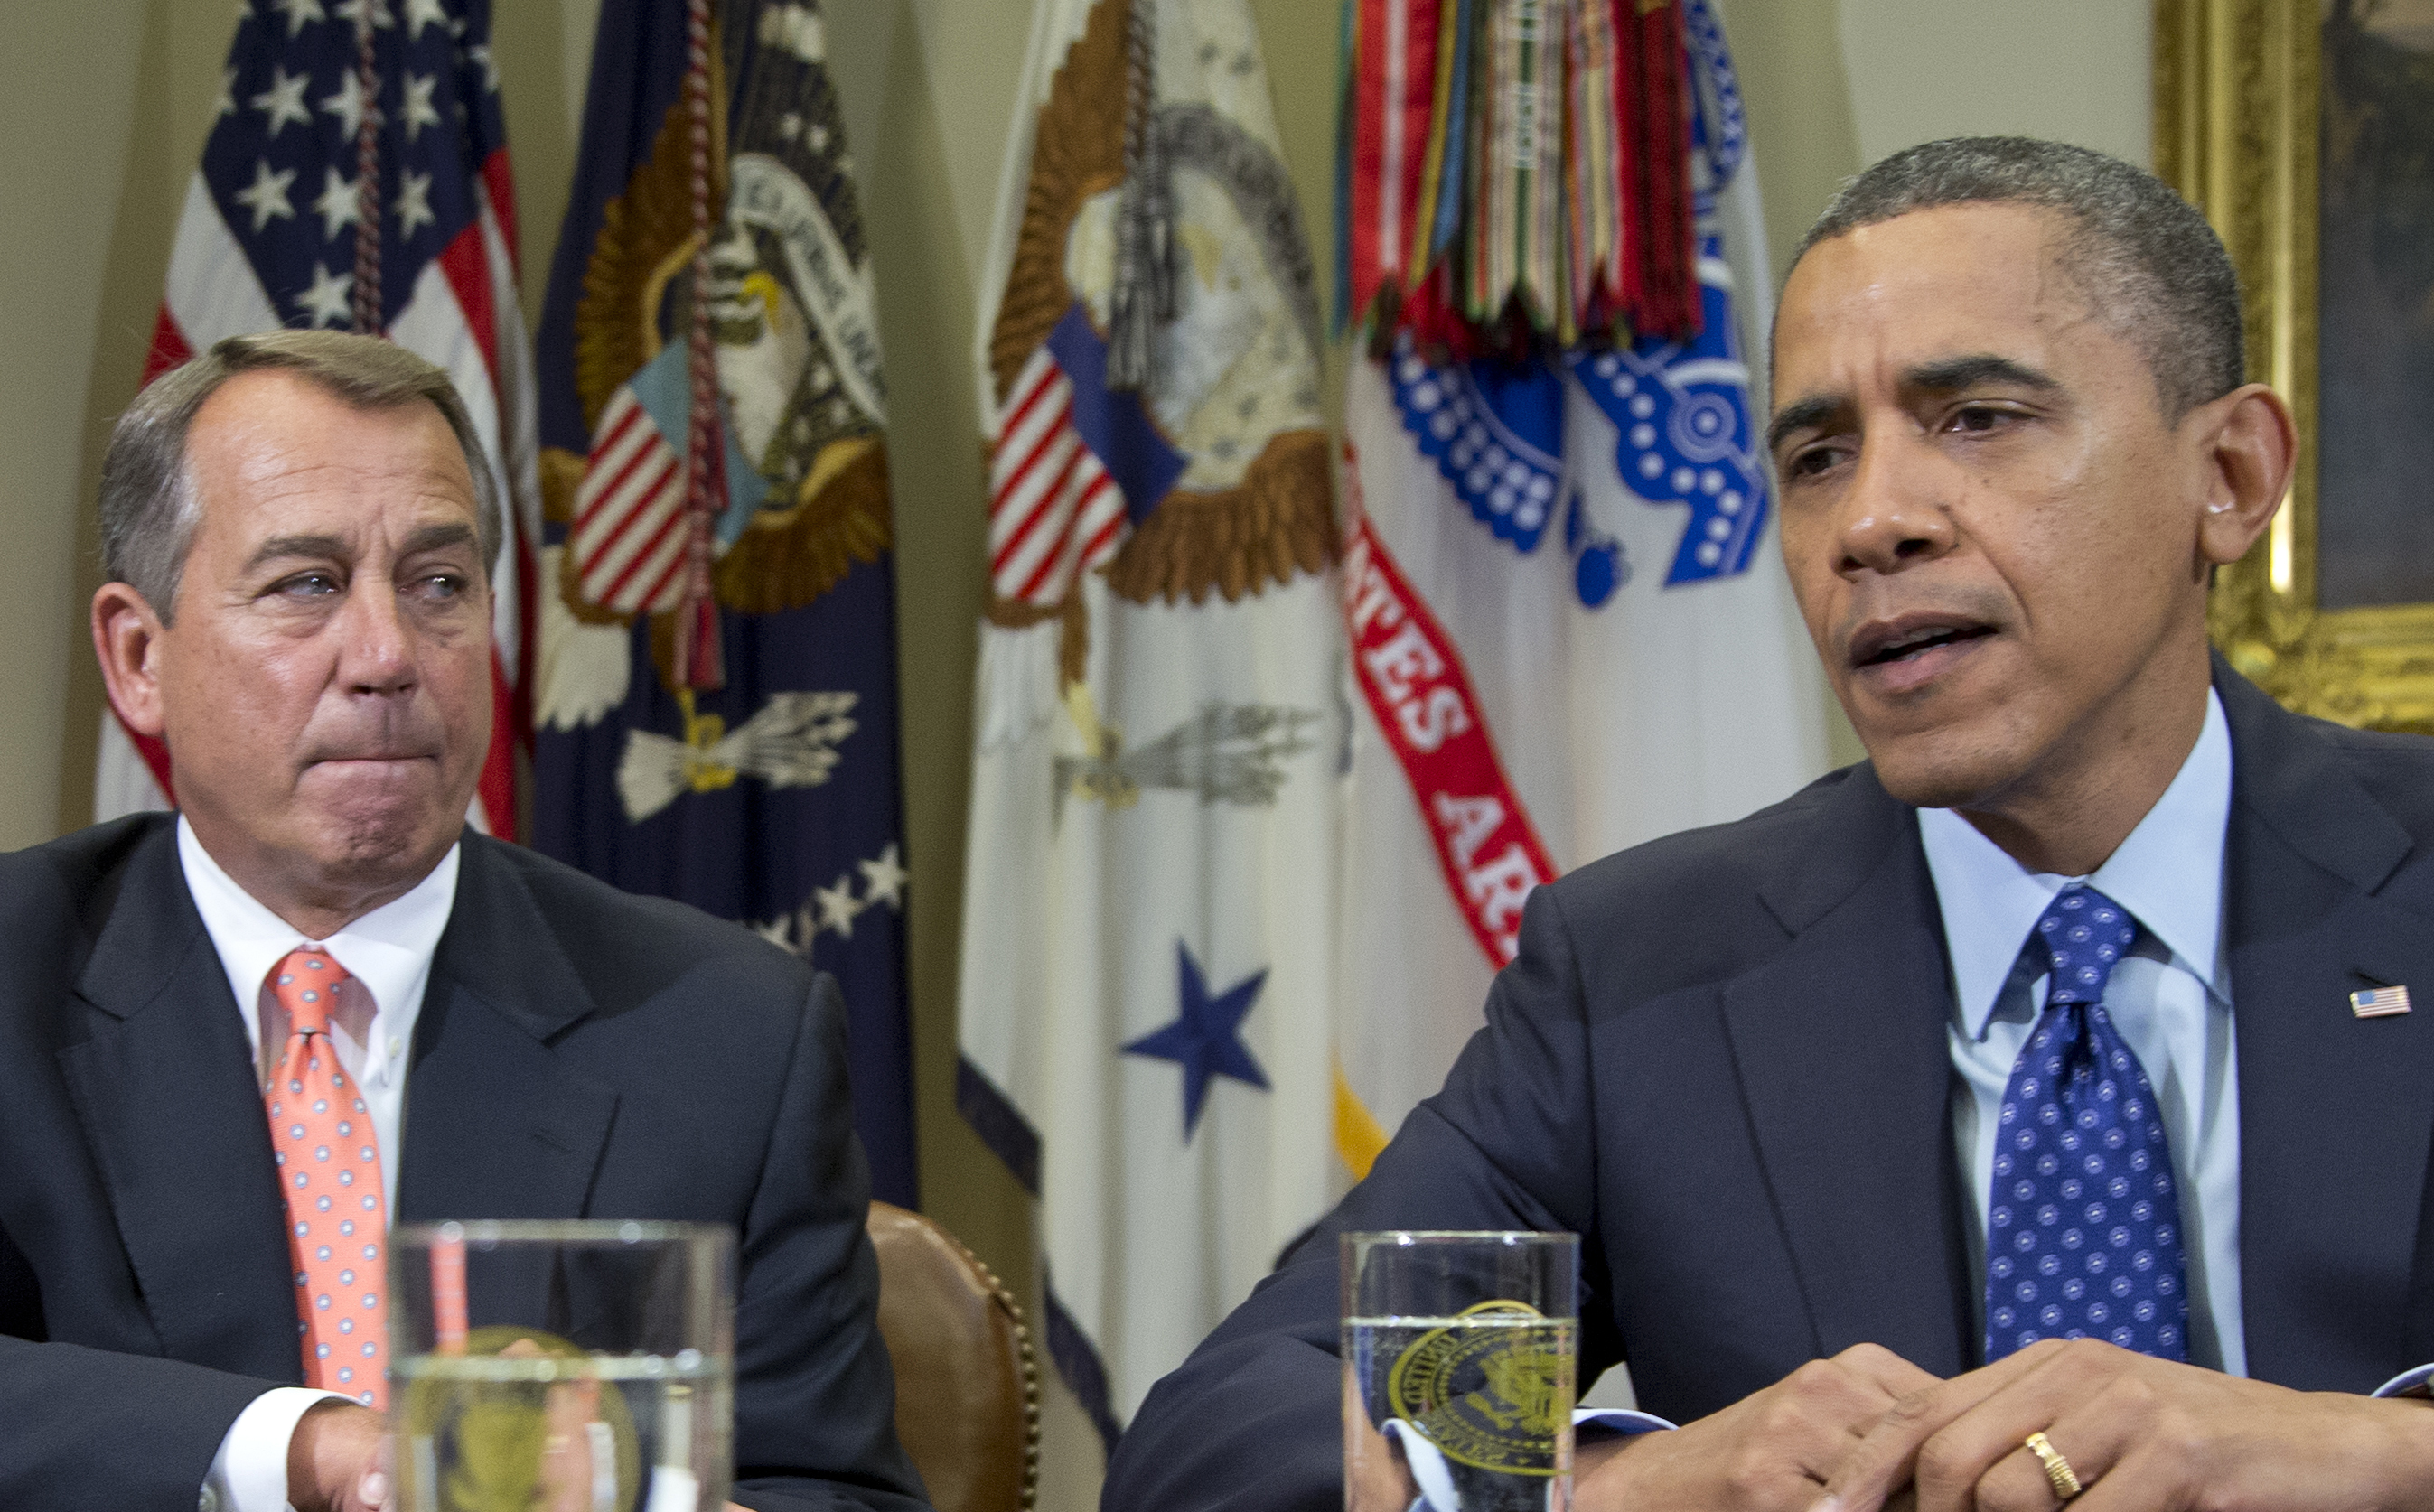 Obama and Boehner discuss the fiscal cliff and how to save the housing market